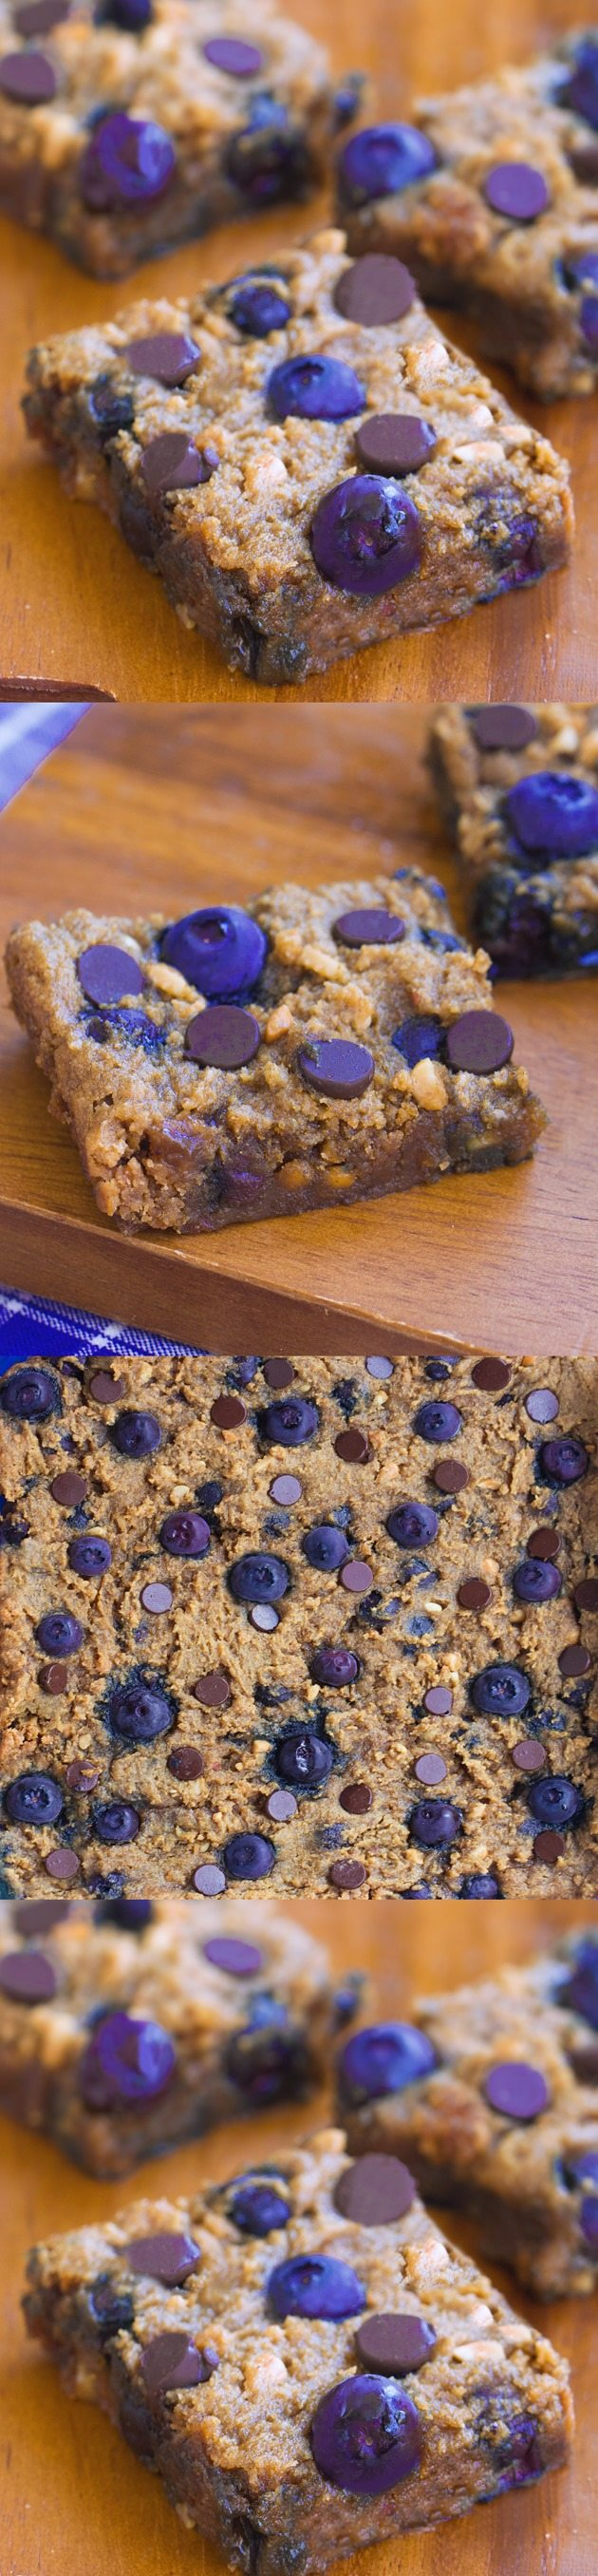 Crazy addictive chocolate chip cookie bars... like the lovechild of a chocolate chip cookie and a blueberry pie! Recipe link: http://chocolatecoveredkatie.com/2015/08/13/chocolate-chip-blueberry-bars-flourless/